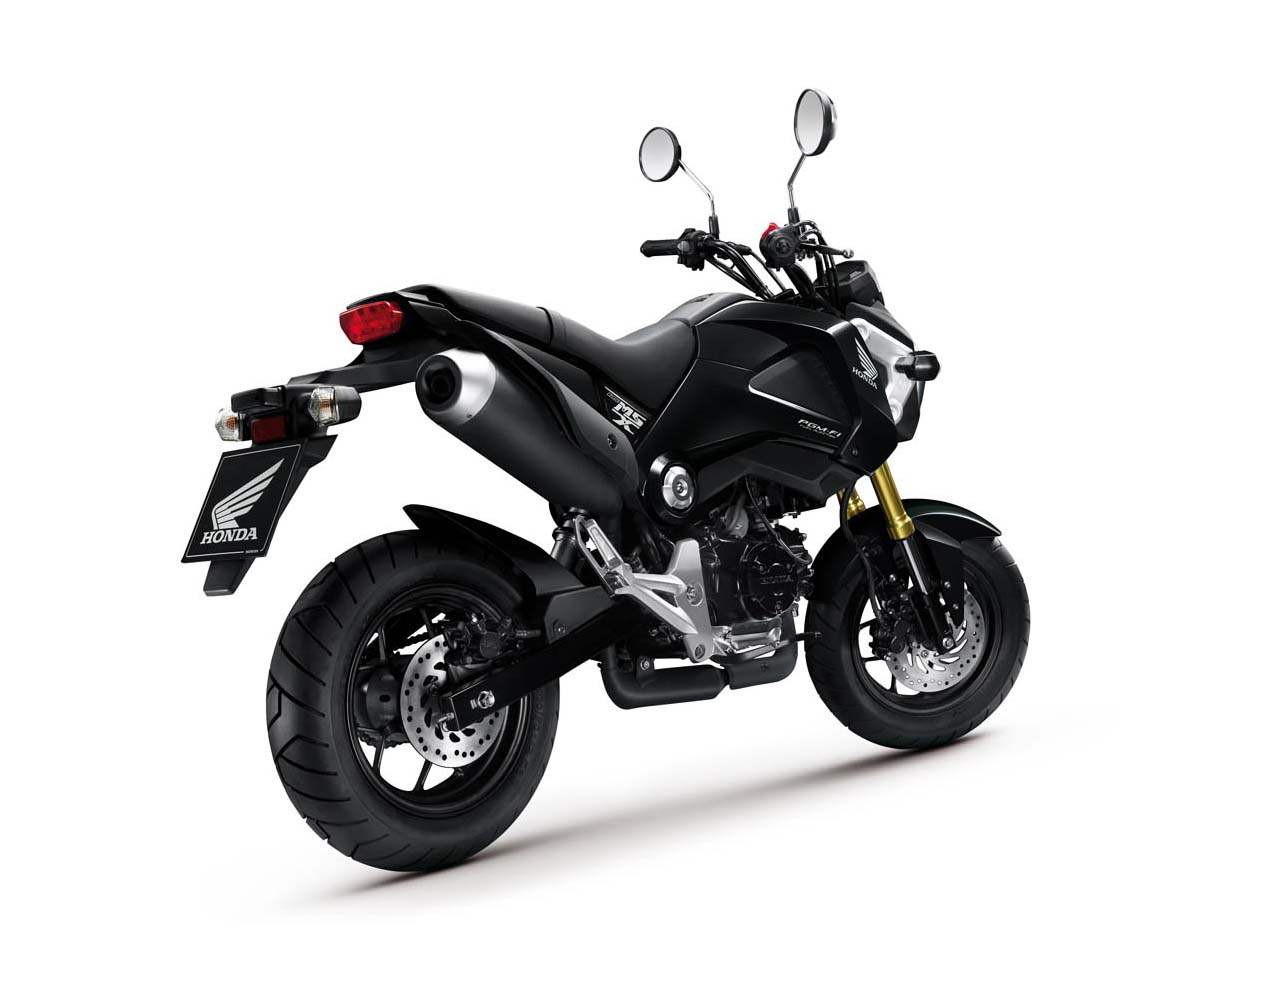 more photos of the honda msx125 asphalt rubber. Black Bedroom Furniture Sets. Home Design Ideas